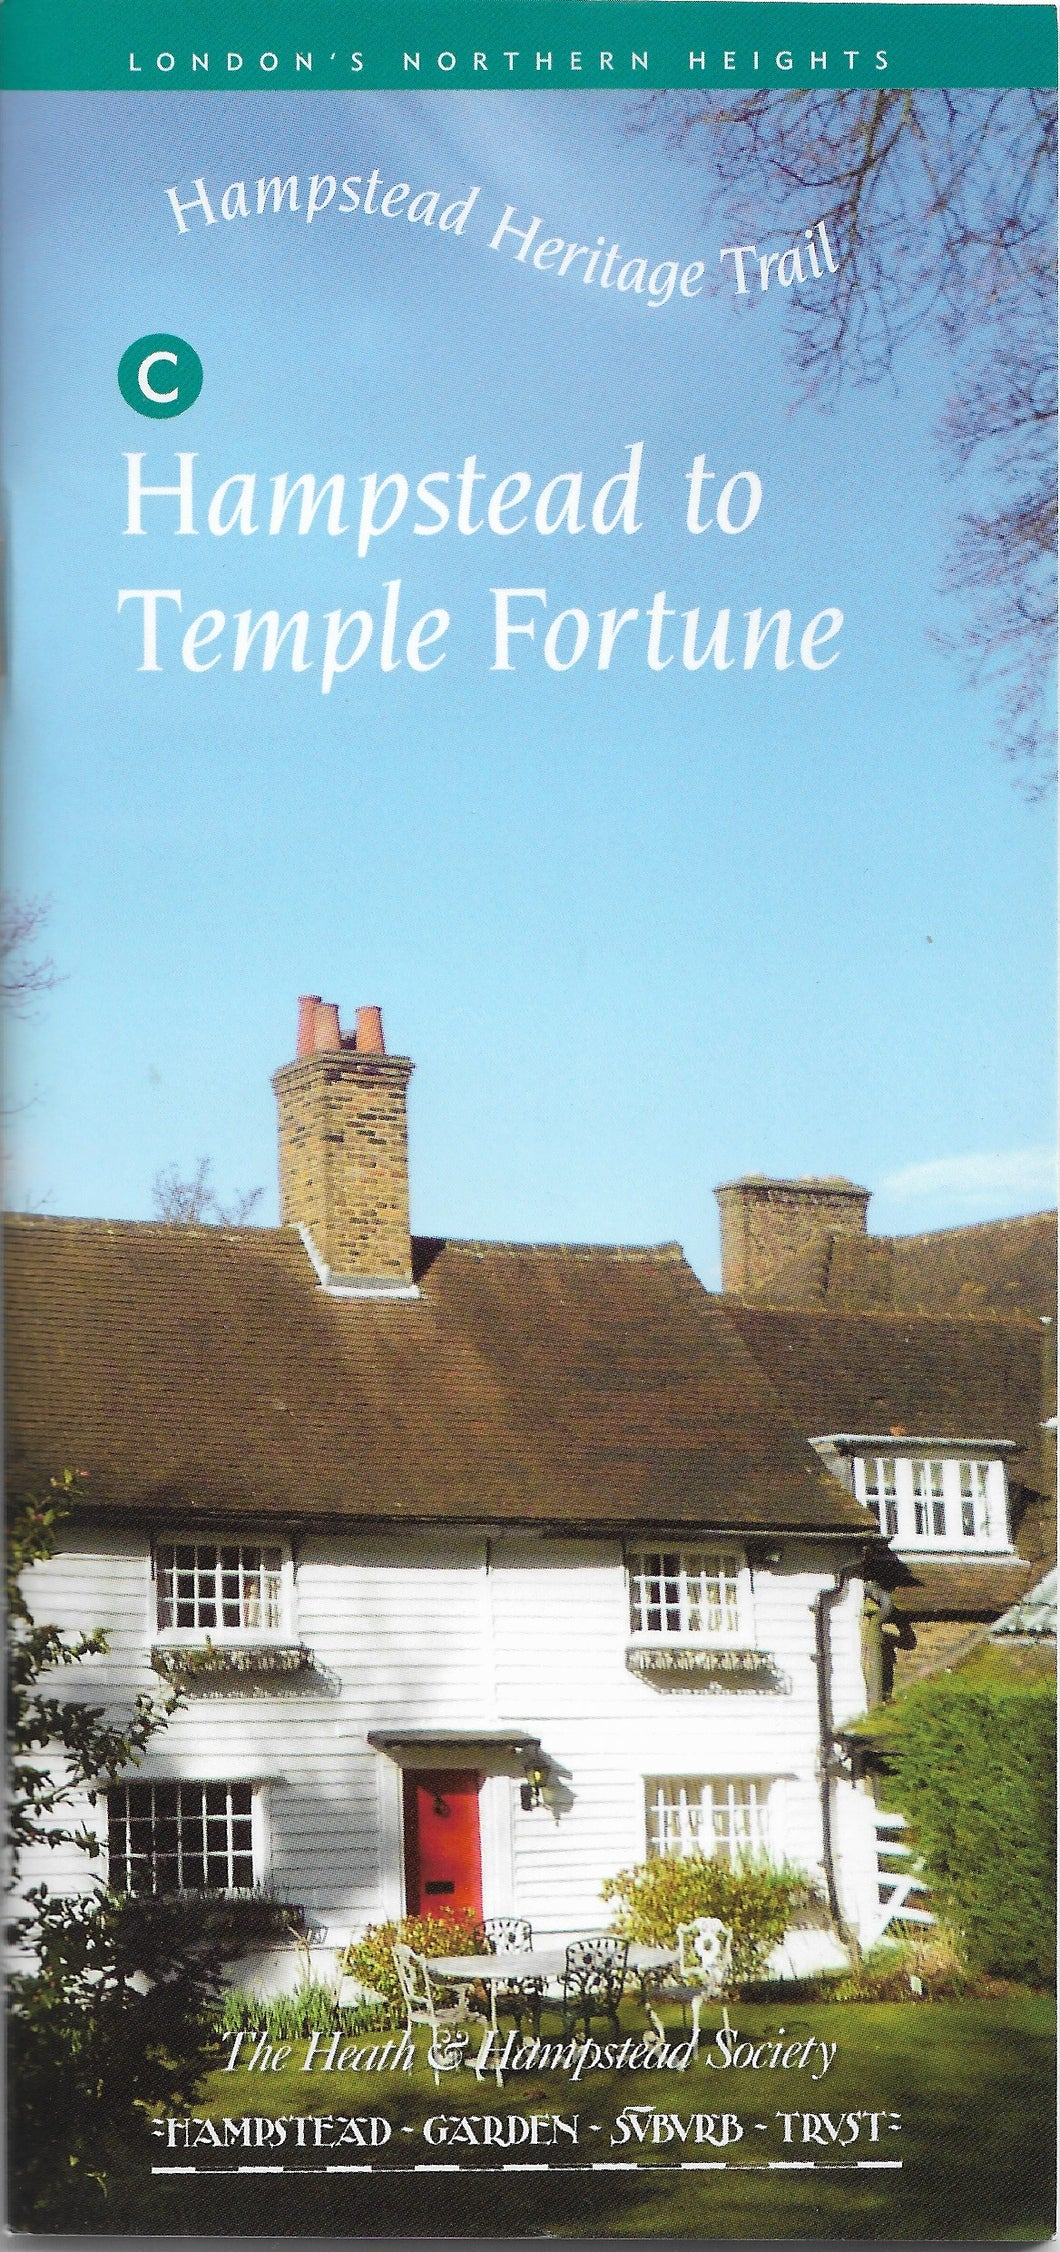 Guide - (C) Hampstead to Temple Fortune